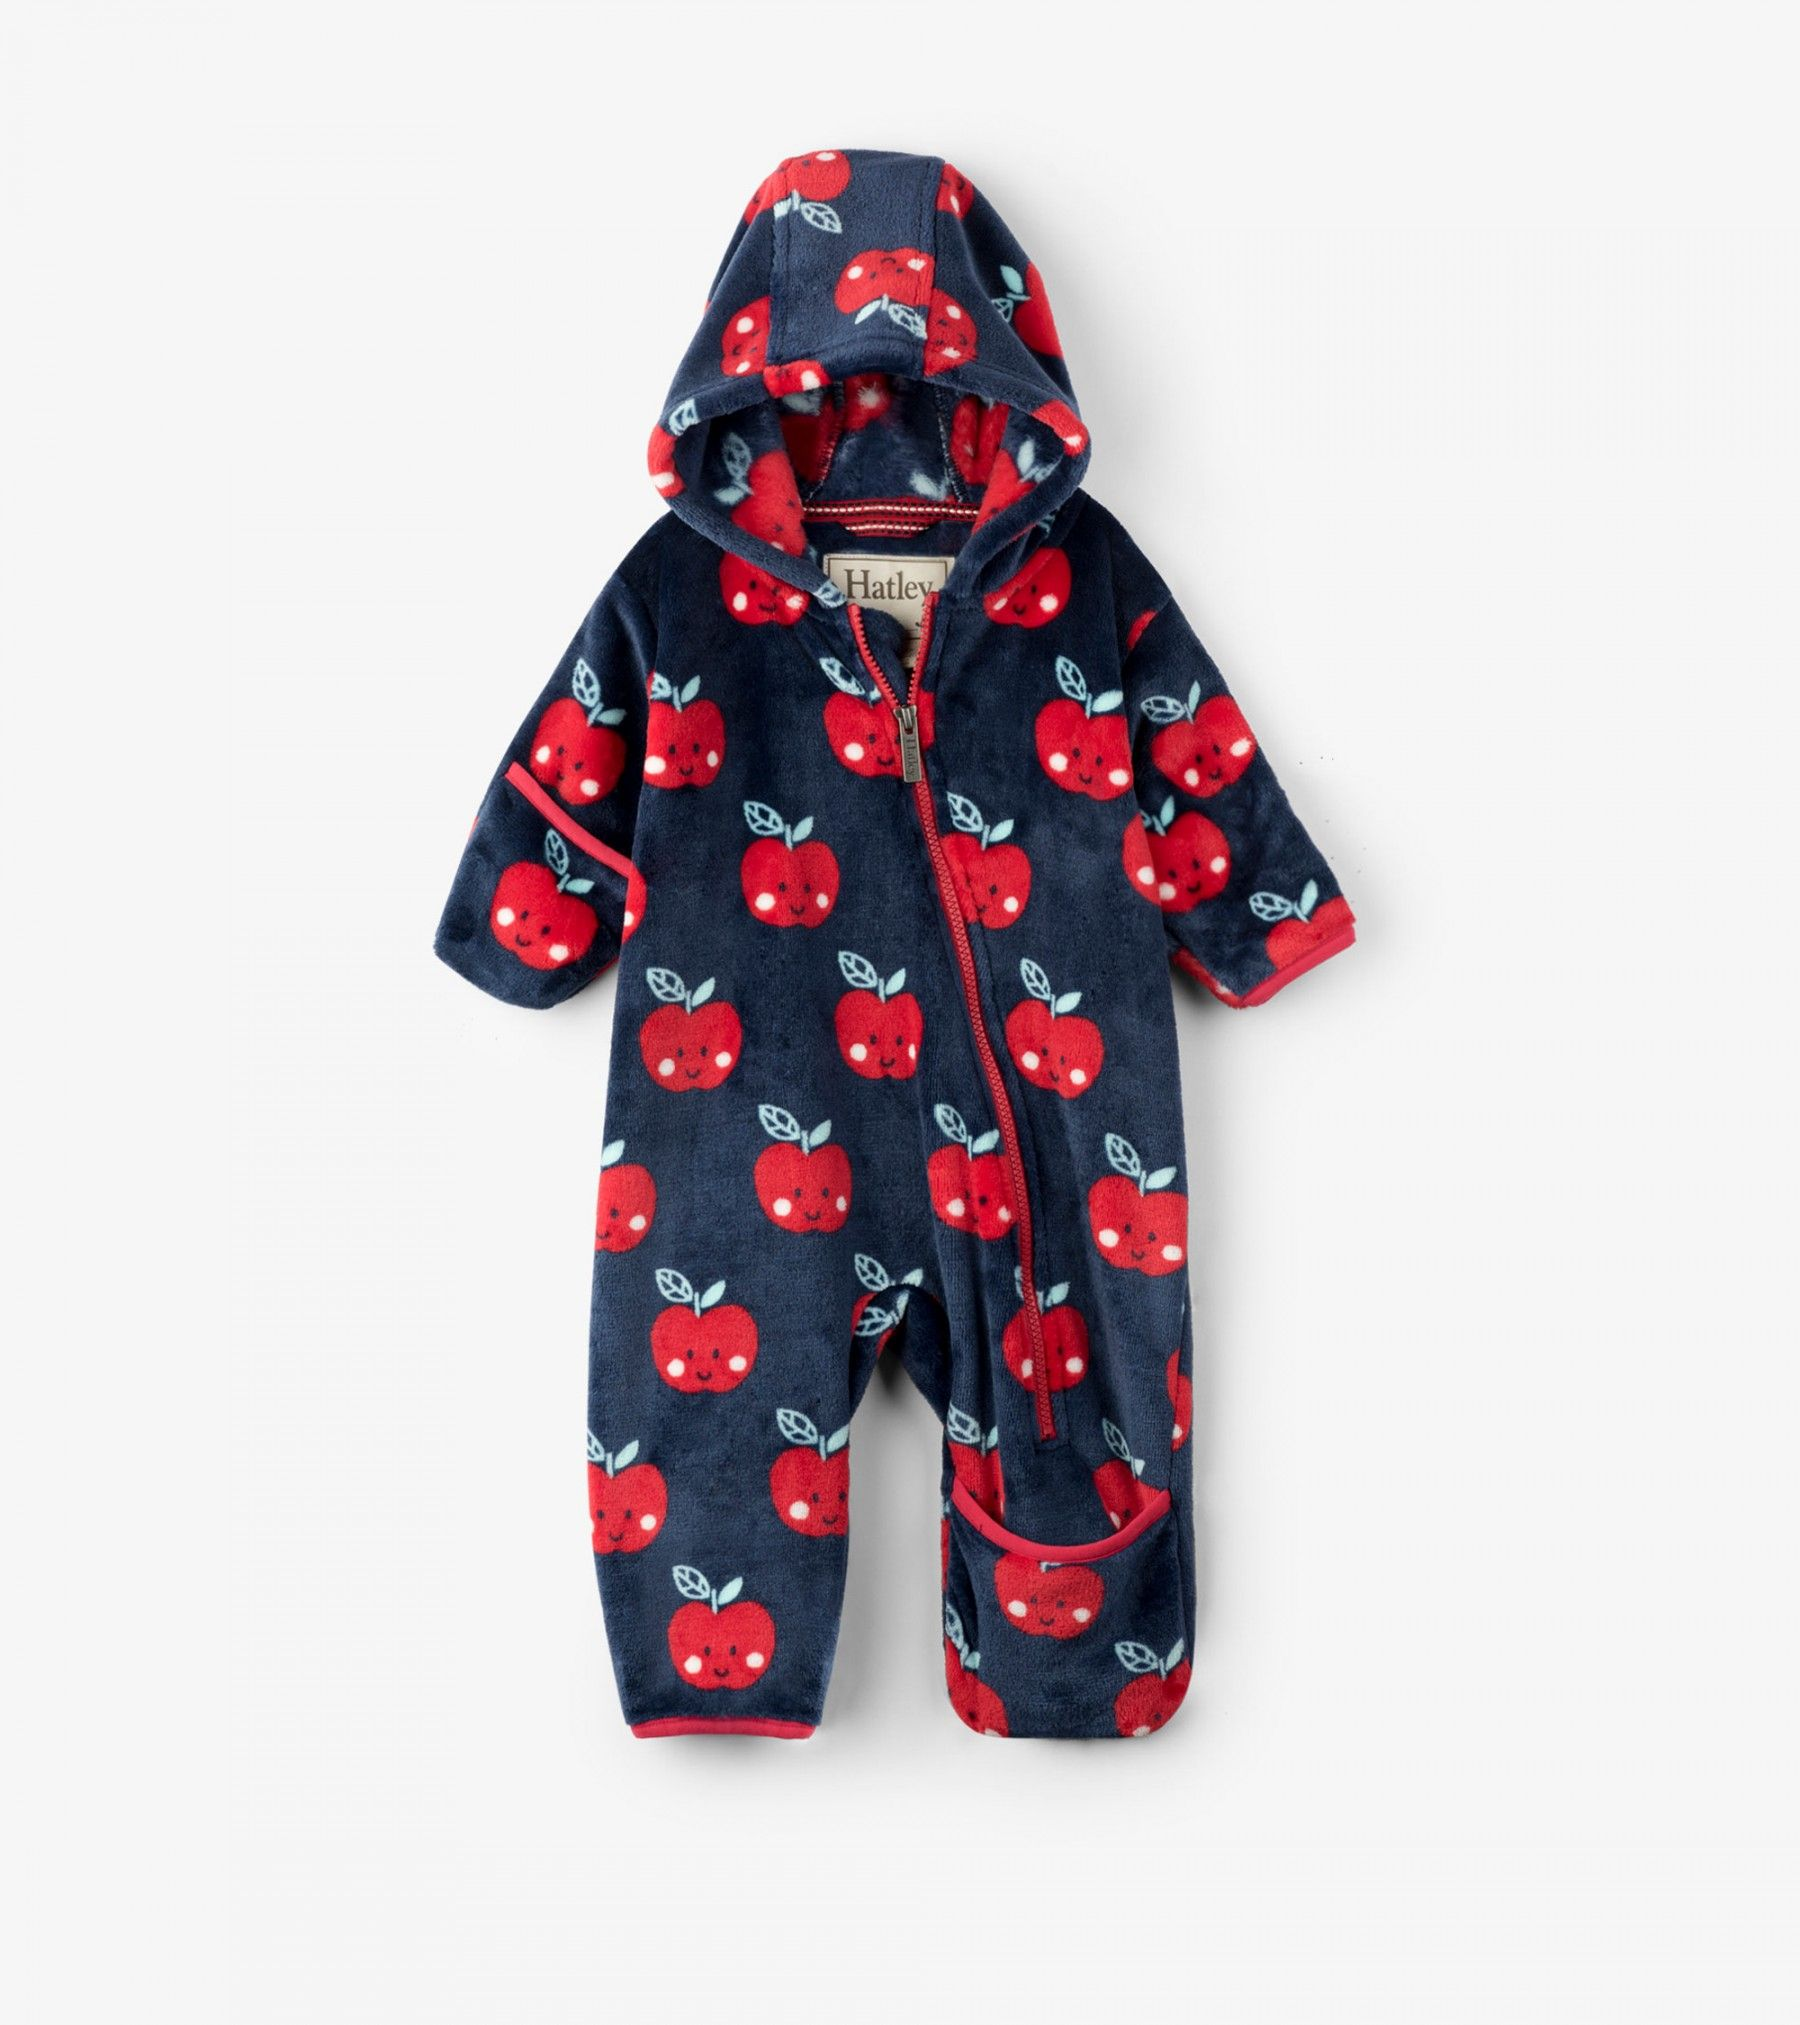 9475083855db Smiling Apples Fuzzy Fleece Baby Bundler - Fall Fuzzy Fleece for All ...